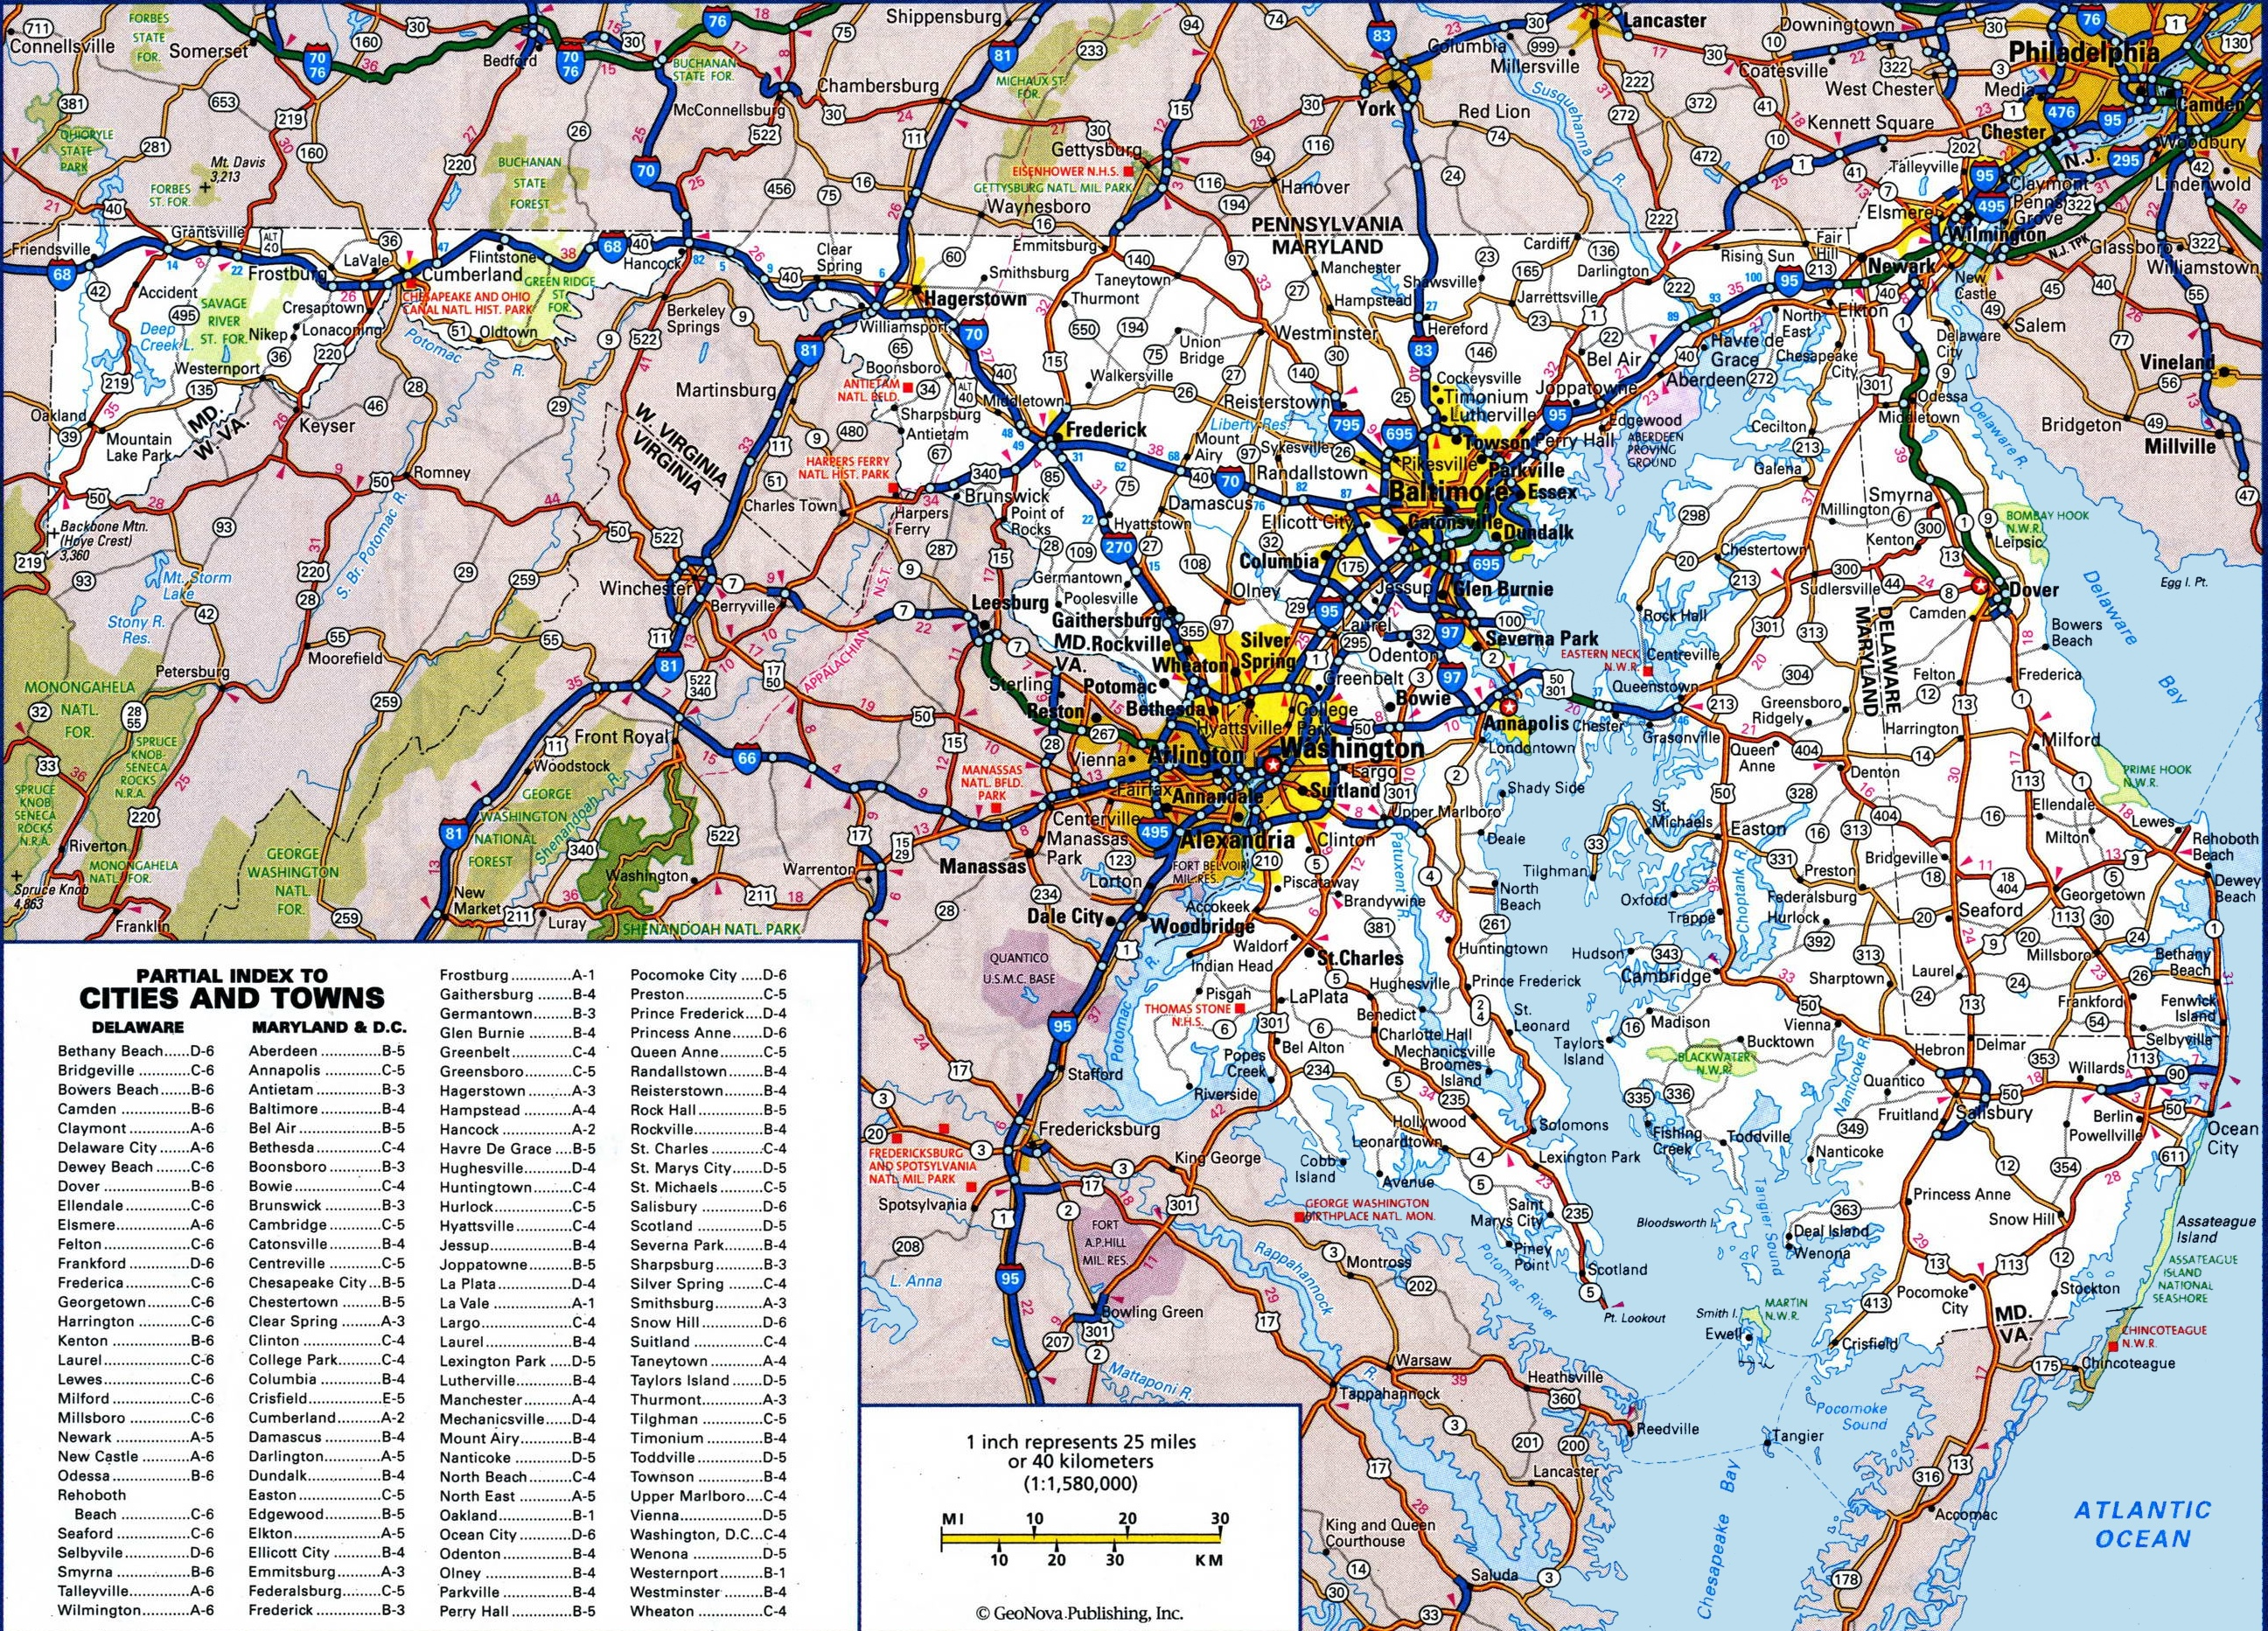 Large Detailed Map Of Maryland With Cities And Towns - Florida map cities and towns